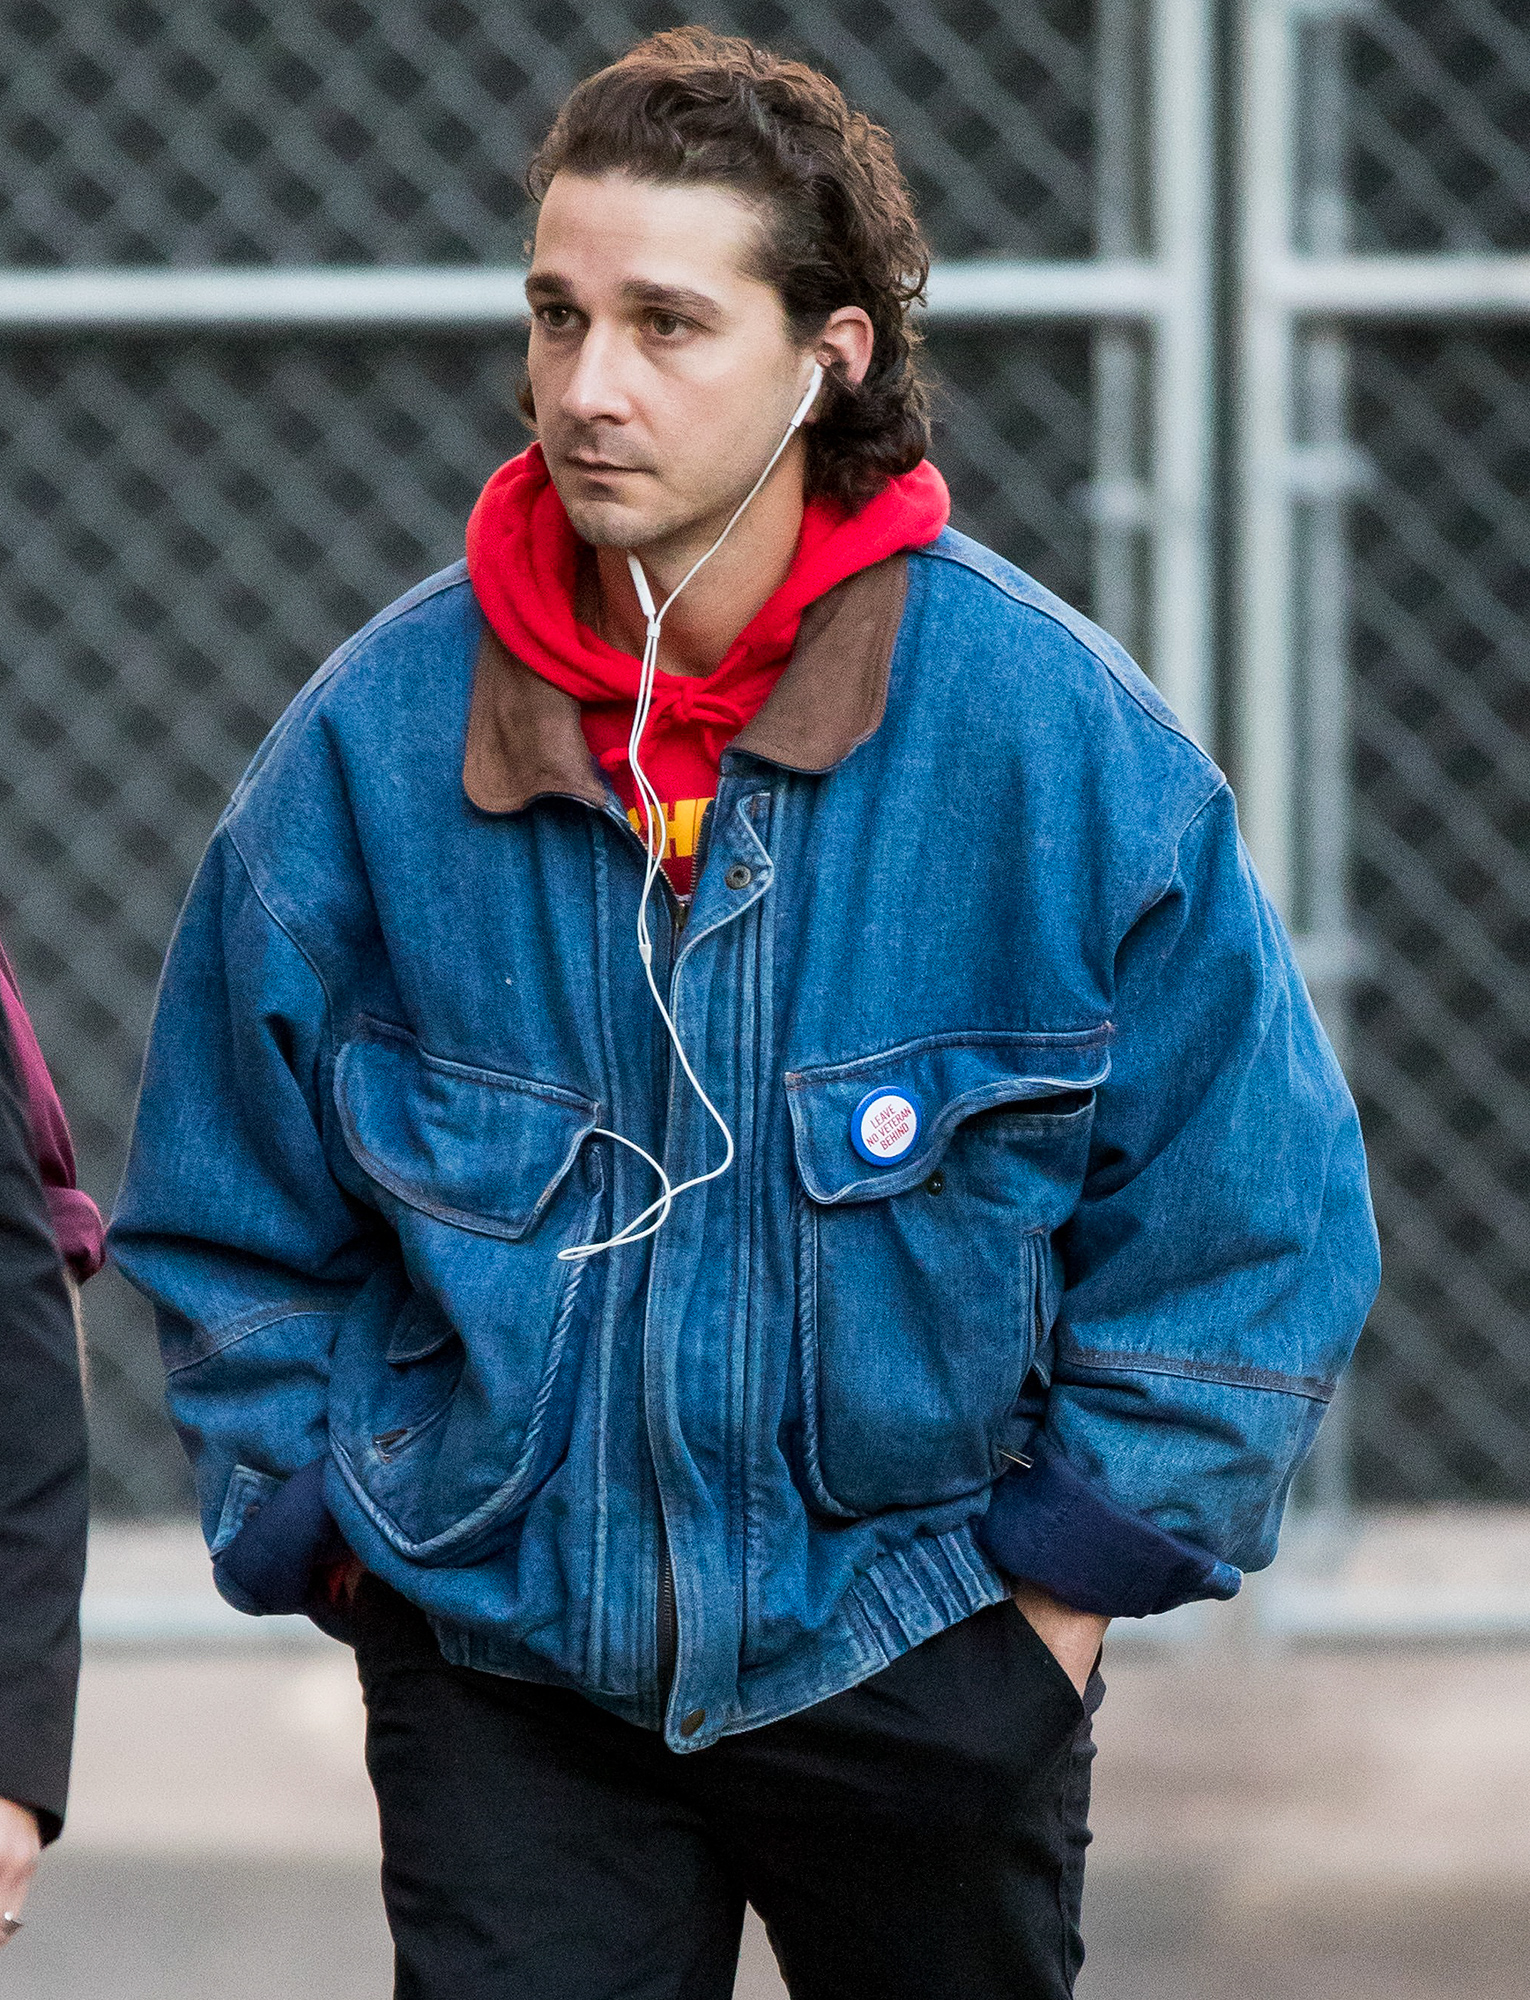 Shia LaBeouf is spotted arriving at 'Jimmy Kimmel Live'